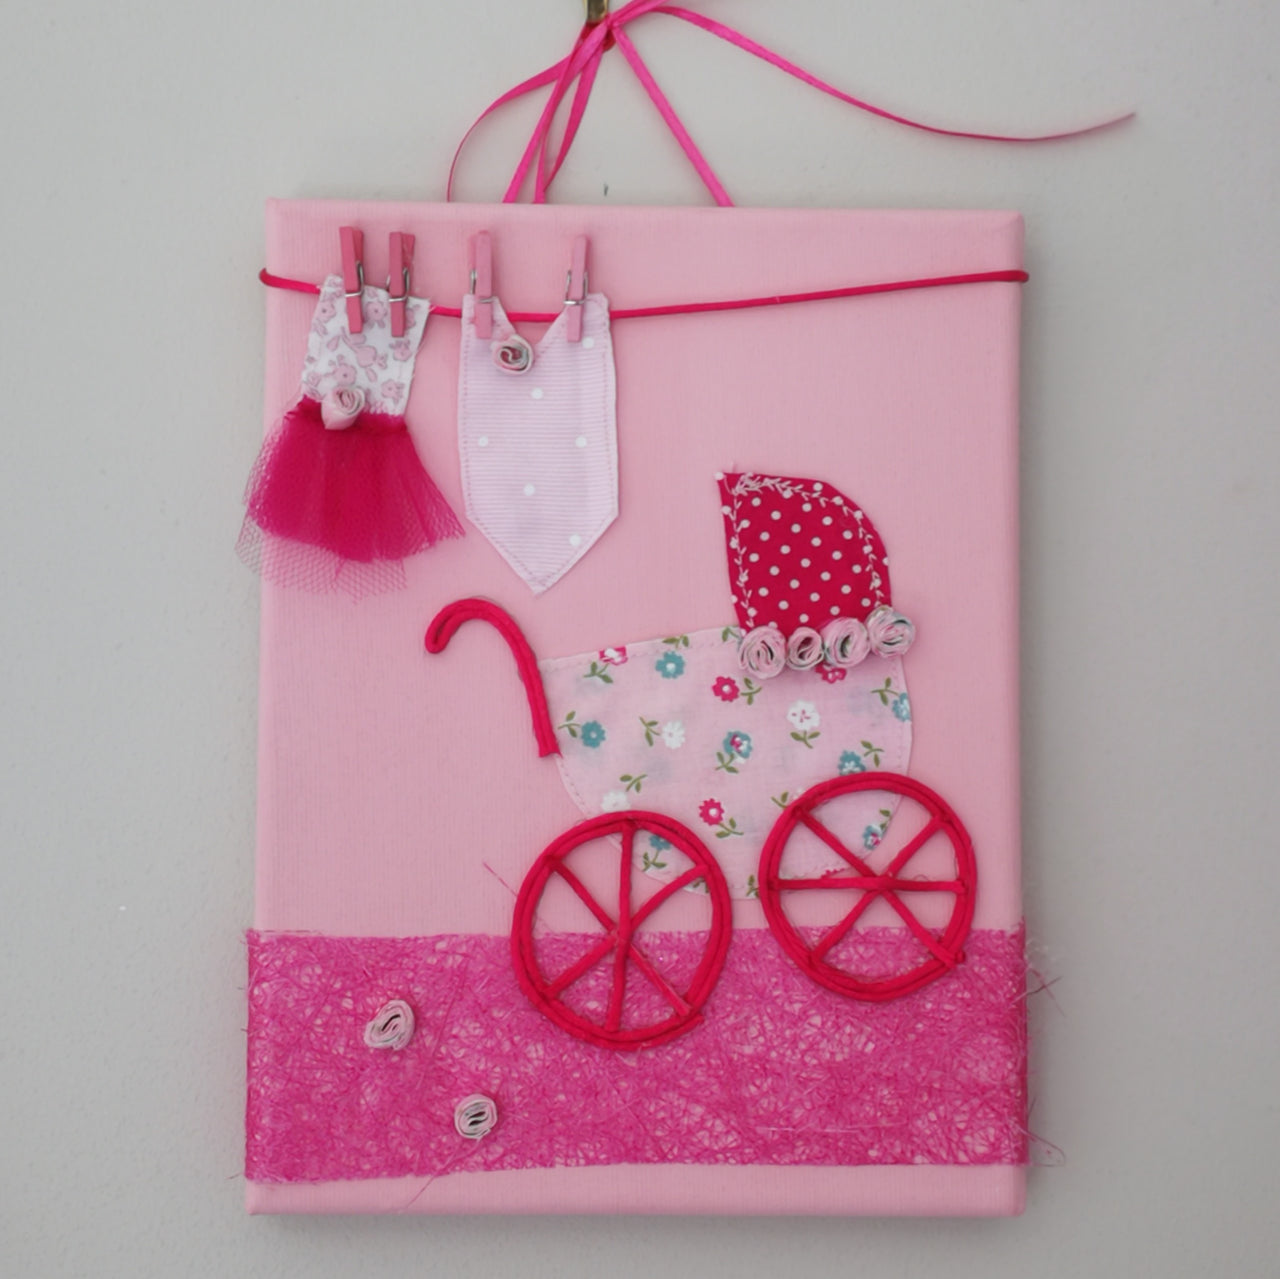 A beautiful Italian hand-crafted baby picture complete with an old style pram and washing line. It is the ultimate gift for a new baby or for their christening or baby-naming ceremony. Here in pink.